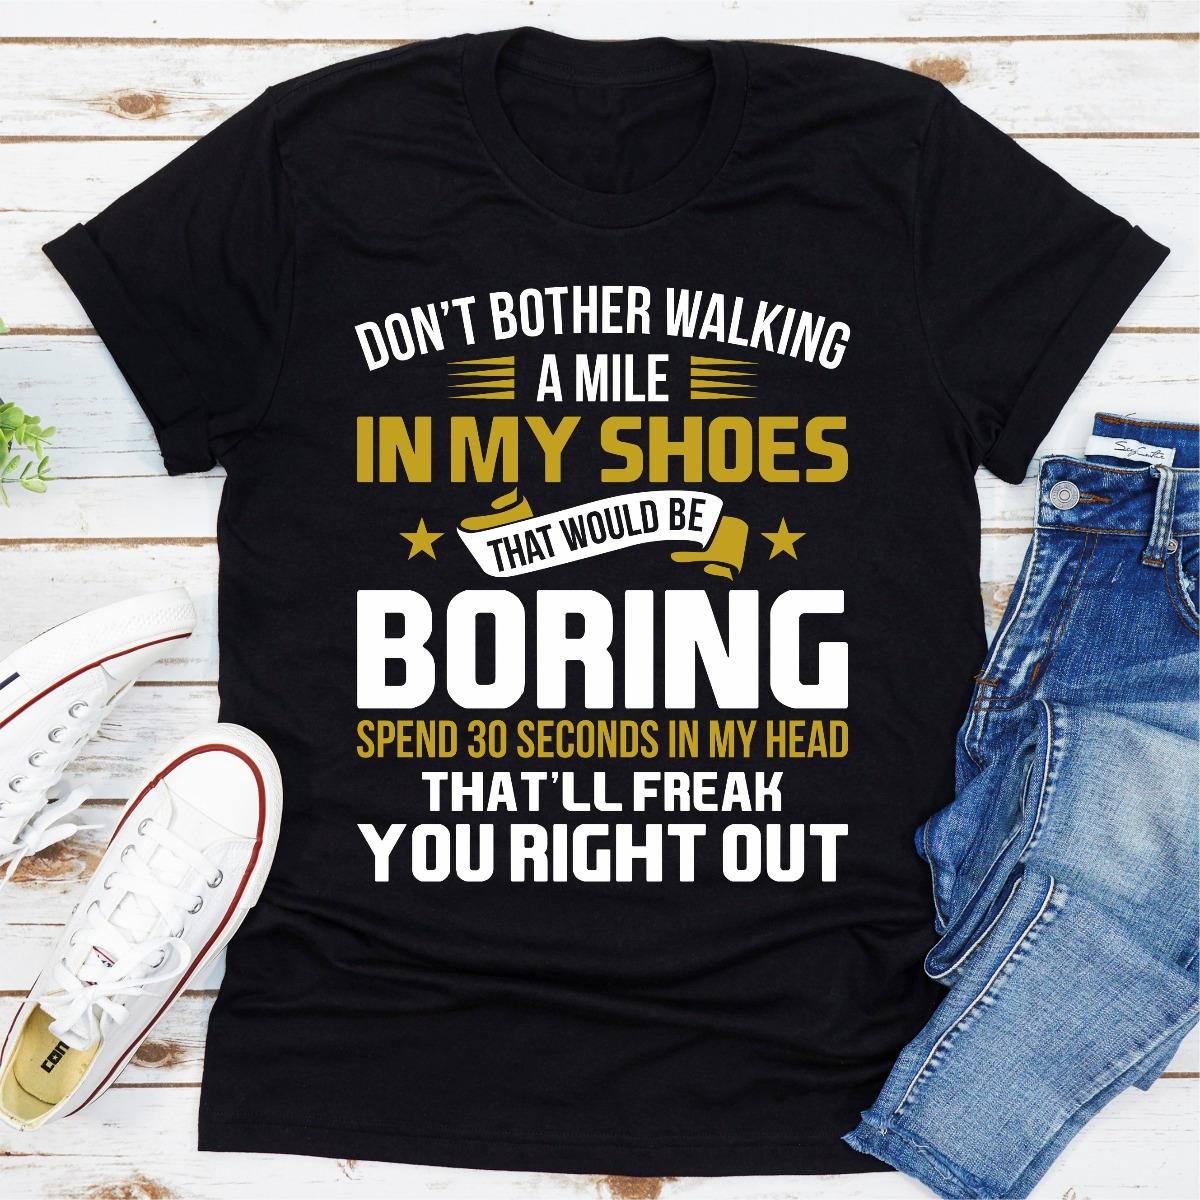 Don't Bother Walking A Mile In My Shoes (Black / 3Xl)